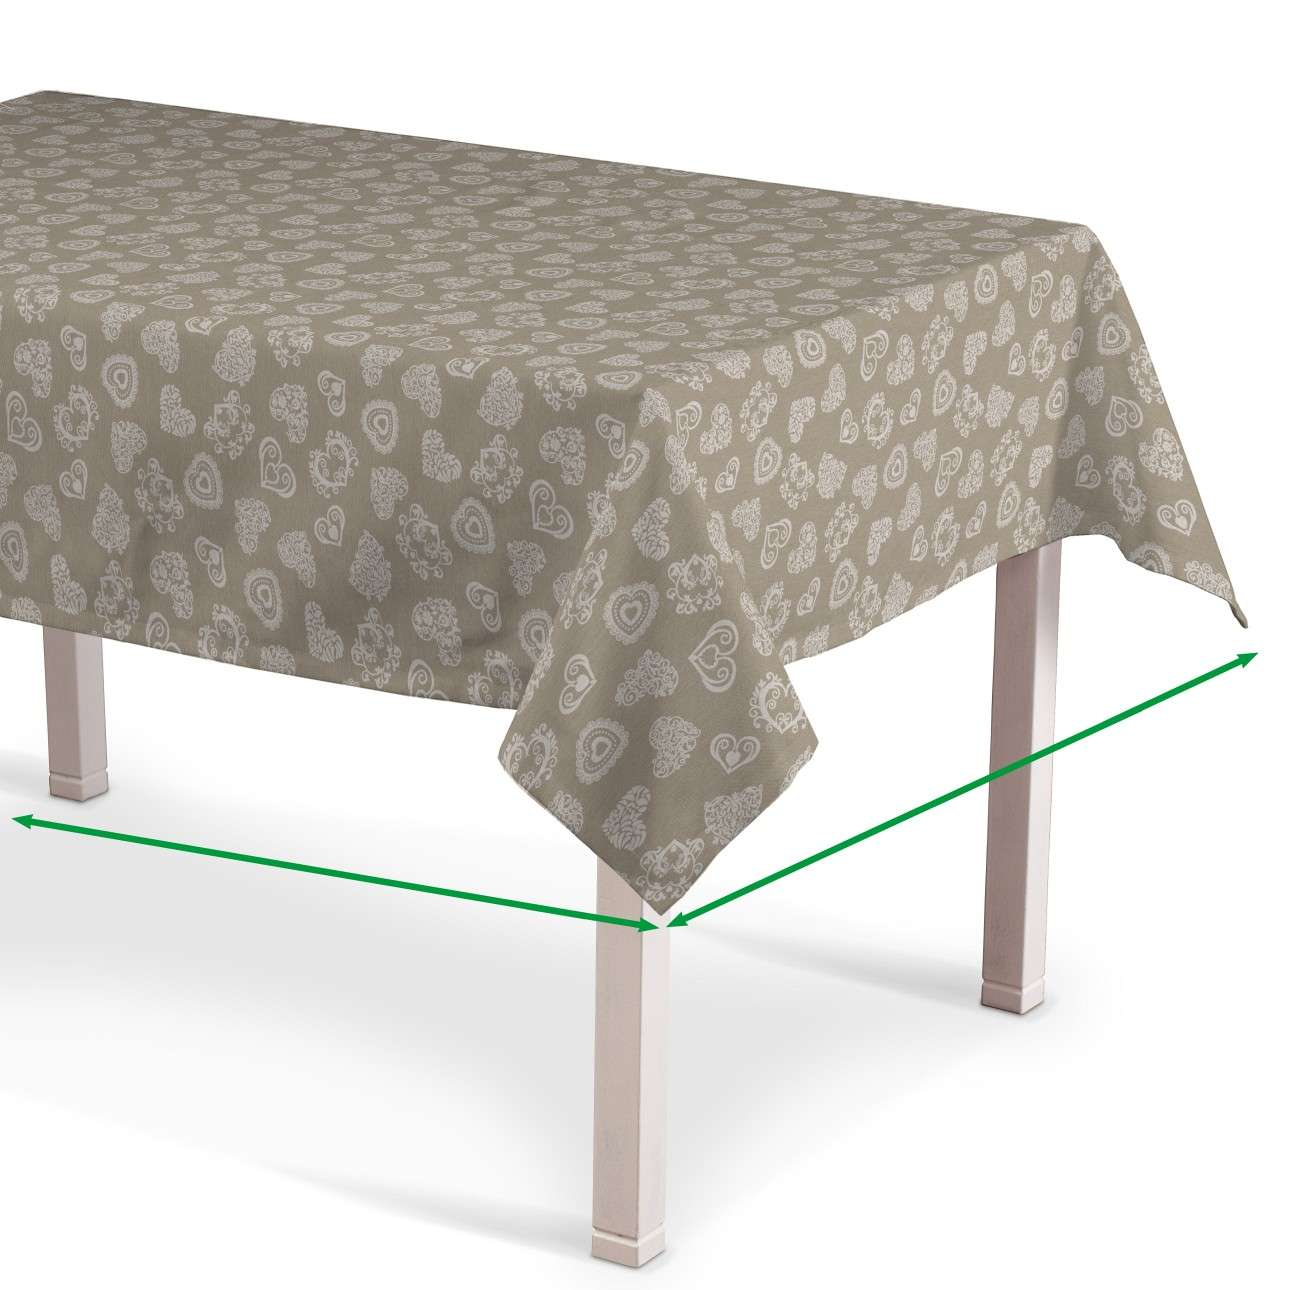 Rectangular tablecloth in collection Flowers, fabric: 140-56